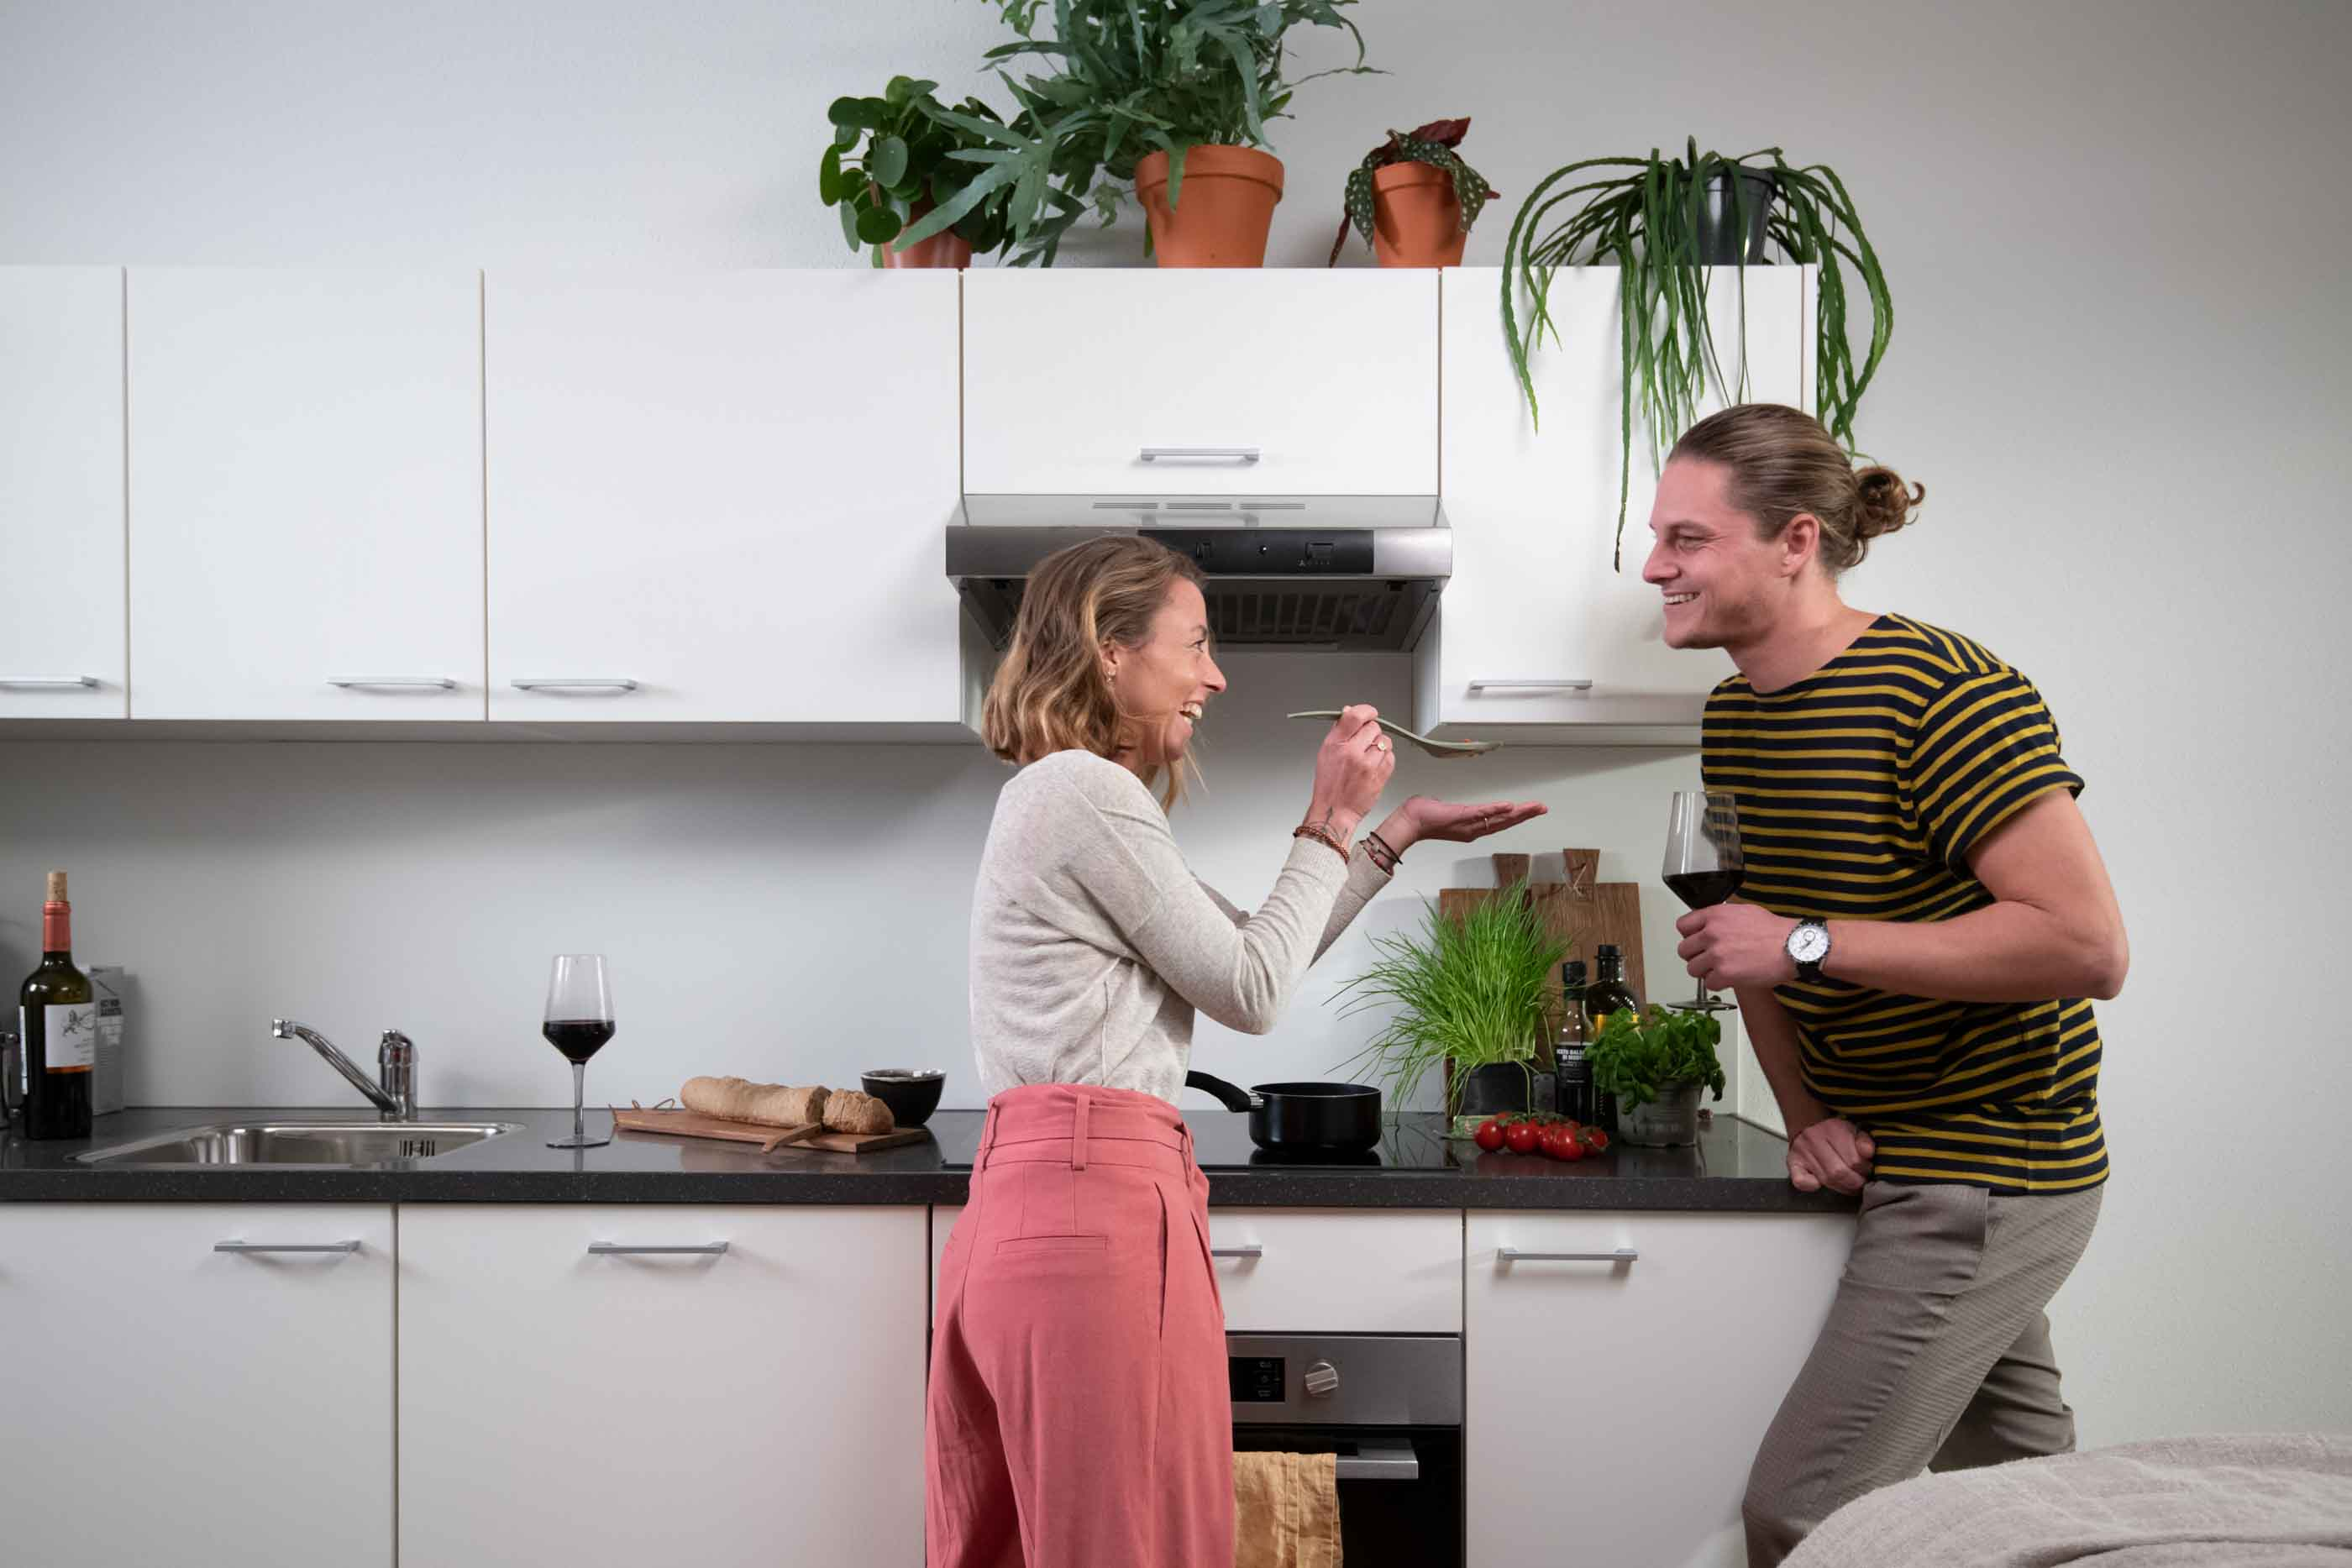 1-bedroom Apartment in OurDomain Amsterdam Diemen Interiors - Couple cooking in the kitchen